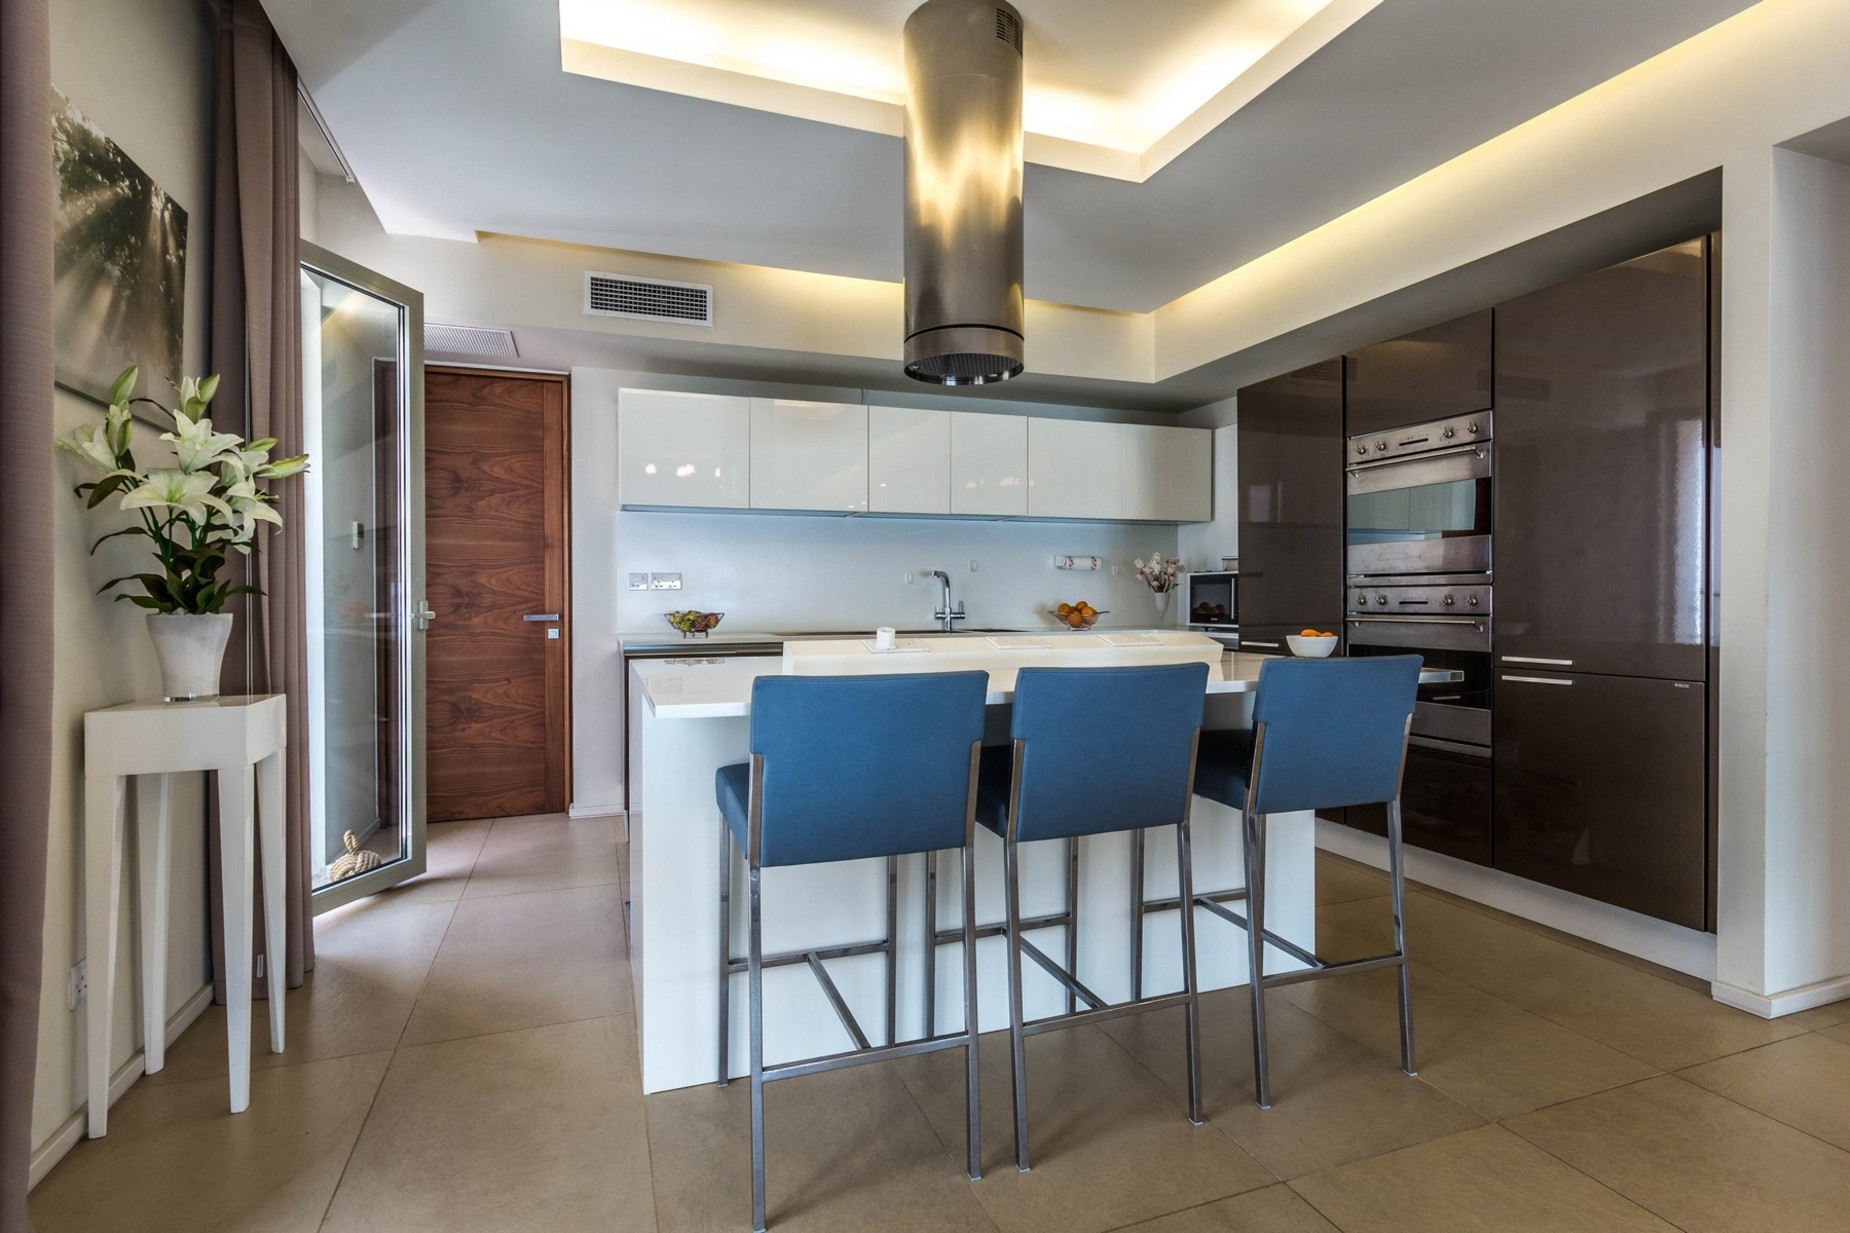 5 bed Penthouse For Sale in Sliema, Sliema - thumb 4